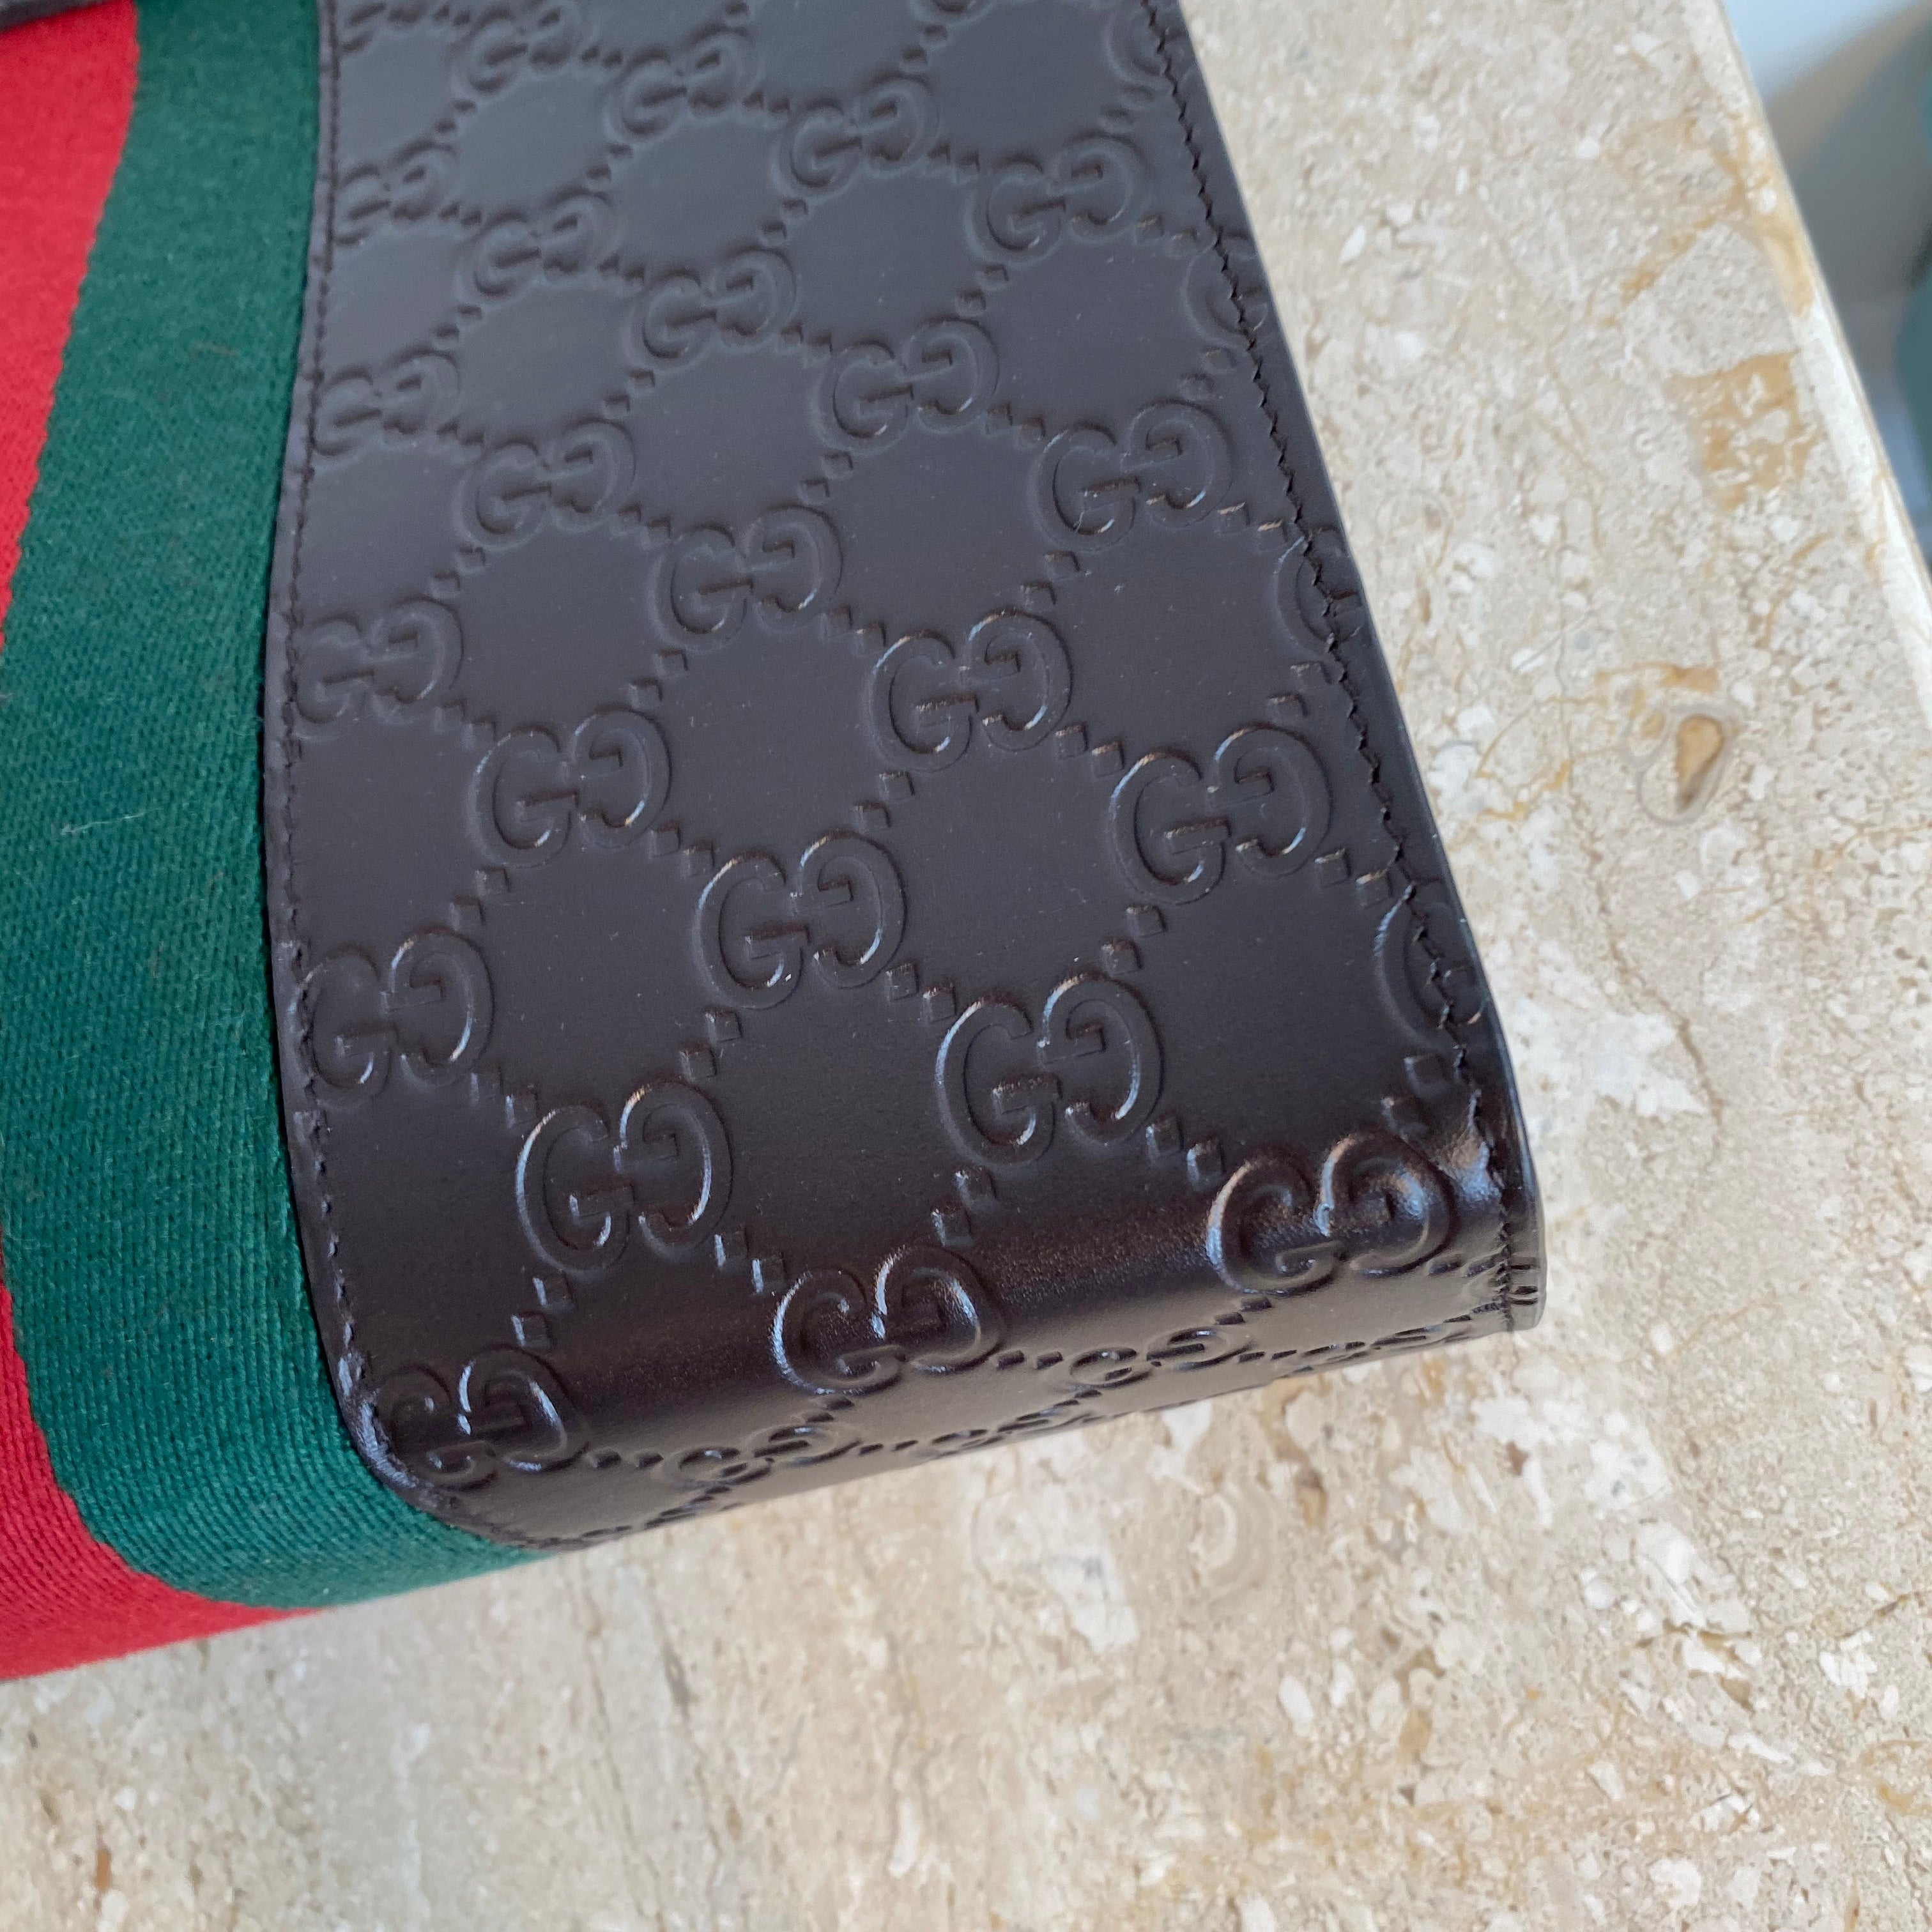 Authentic Gucci Brown GG Embossed Pouch/Clutch/Cosmetics Case